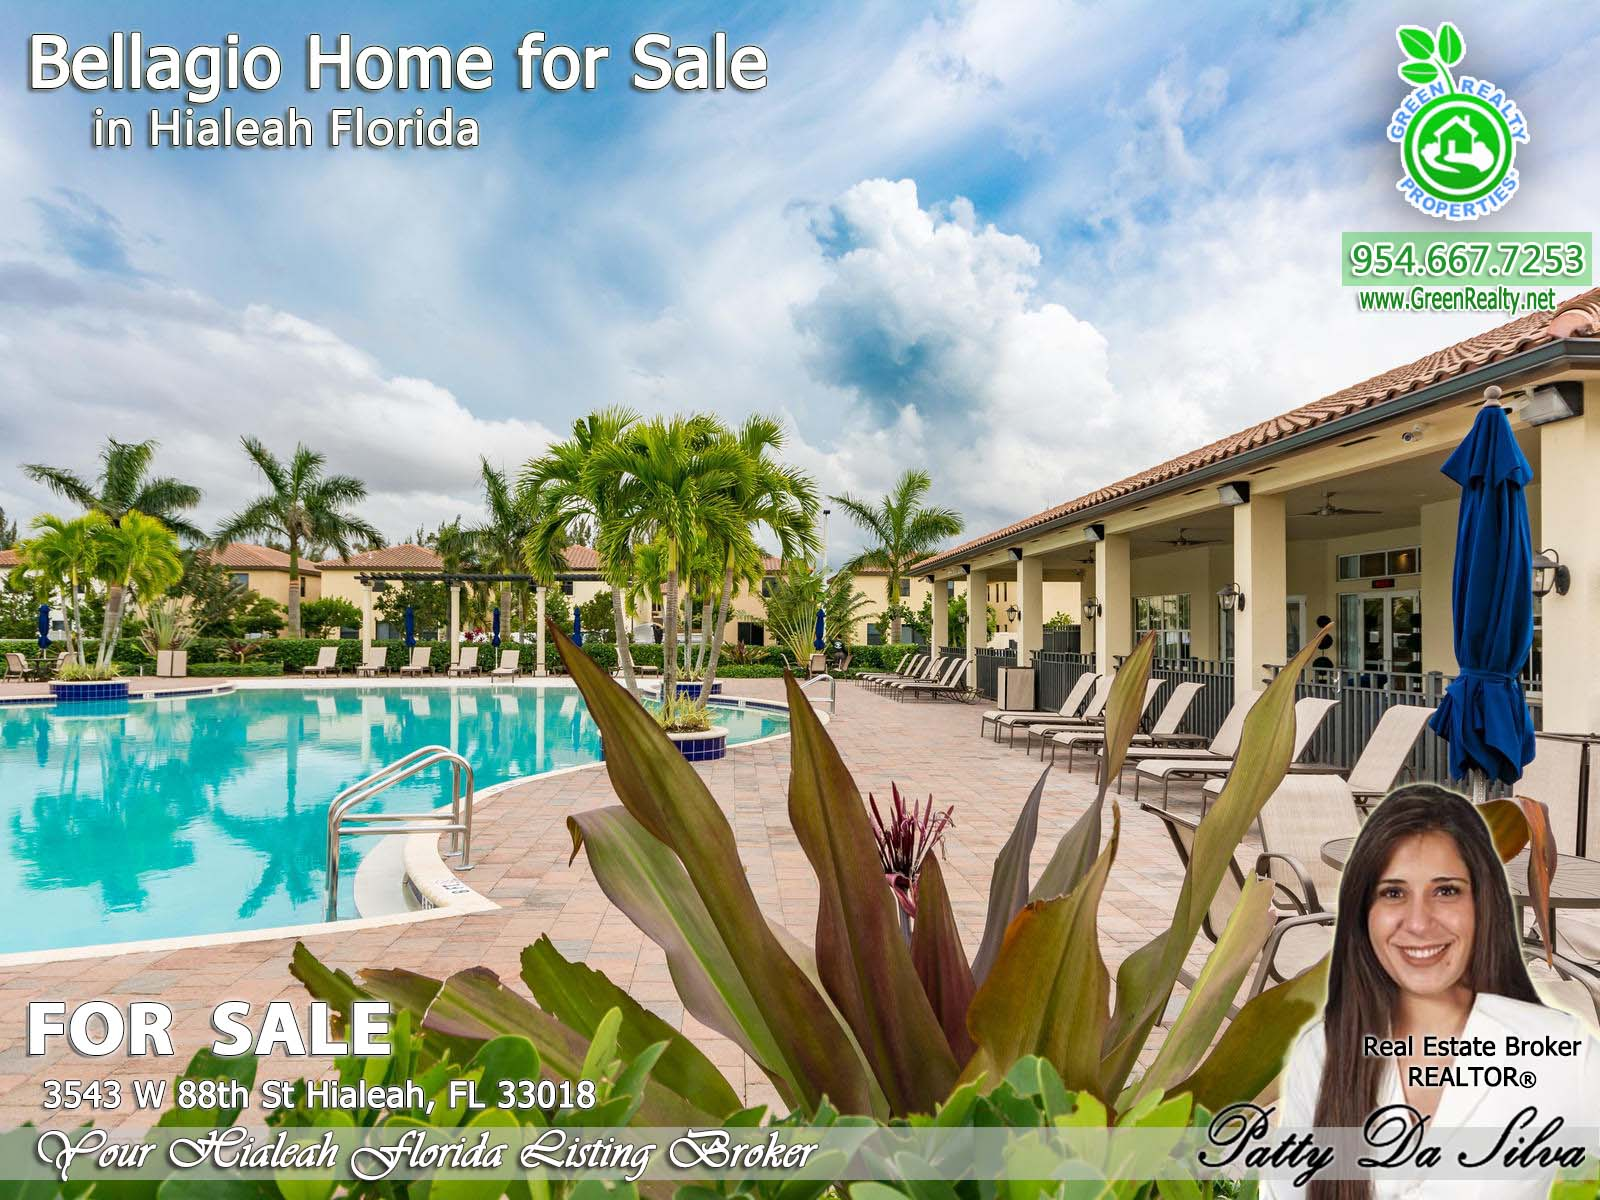 South florida homes for sale by broker Patty da silva of green realty properties (14)